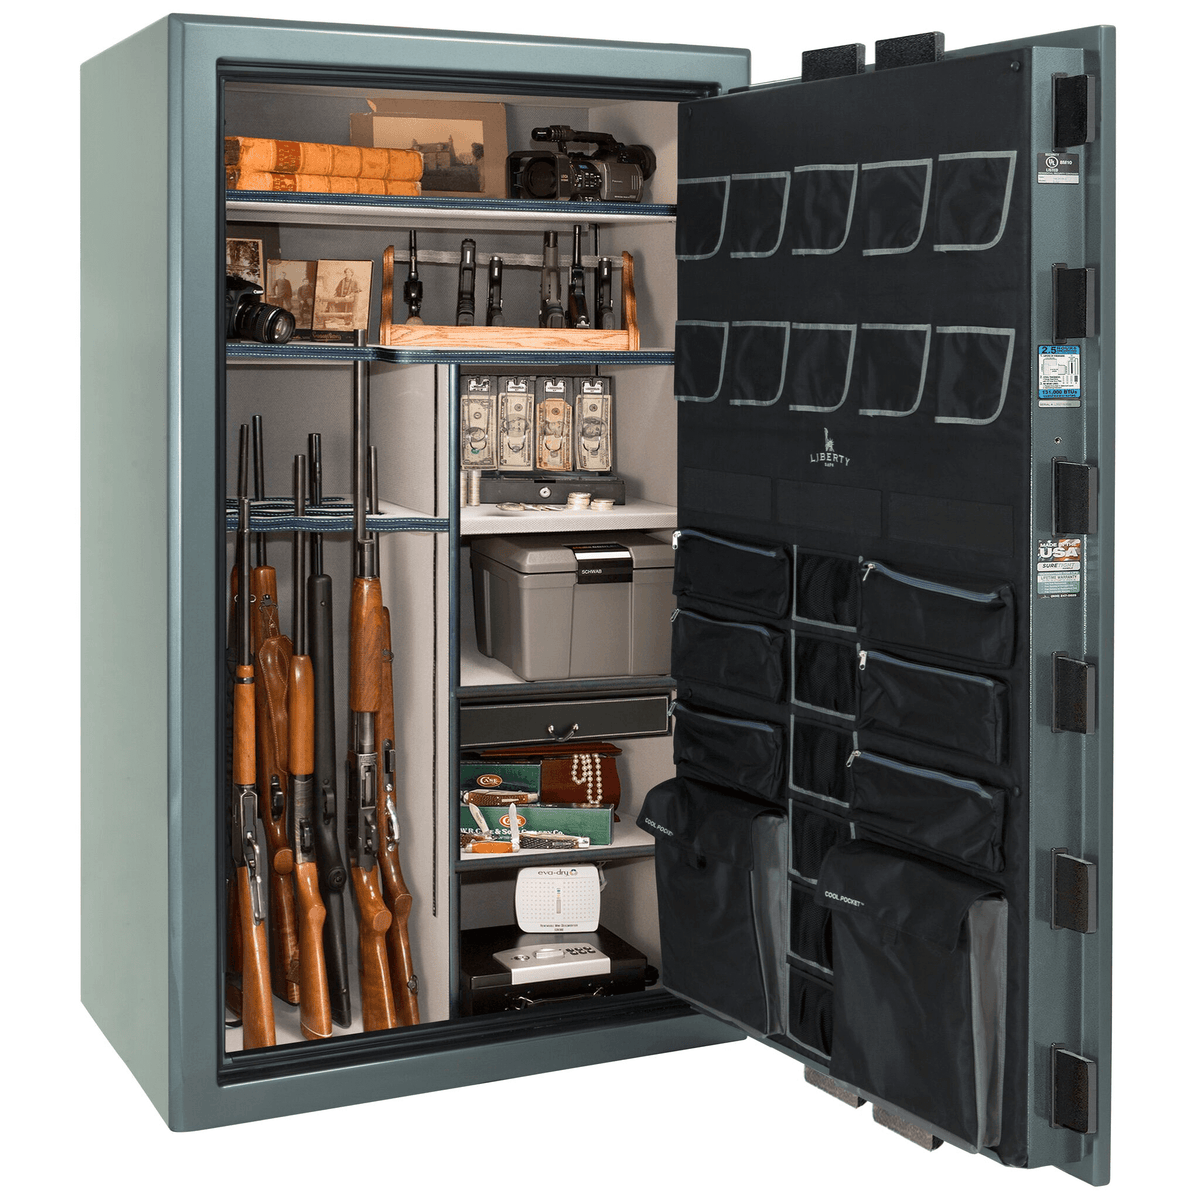 "Presidential | 50 | Level 8 Security | 2.5 Hours Fire Protection | Forest Mist Gloss | Black Electronic Lock | 72.5""(H) x 42""(W) x 32""(D)"